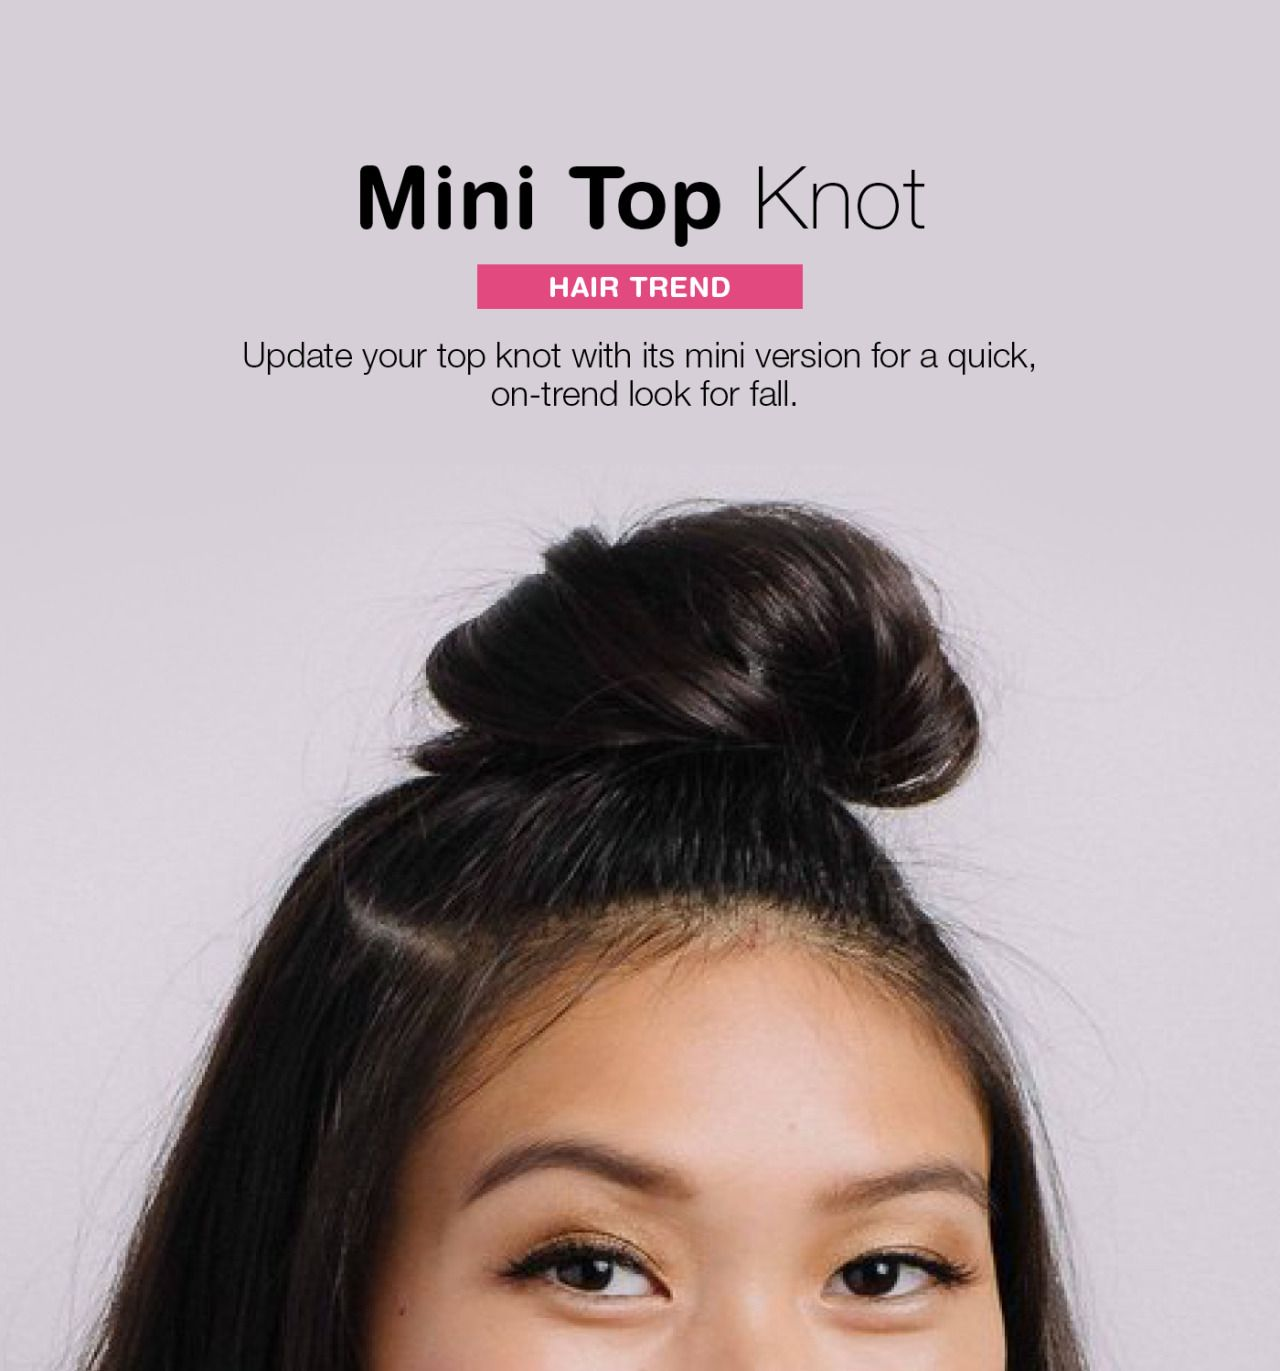 Buybye big olu top knot thereus a mini version walgreens be